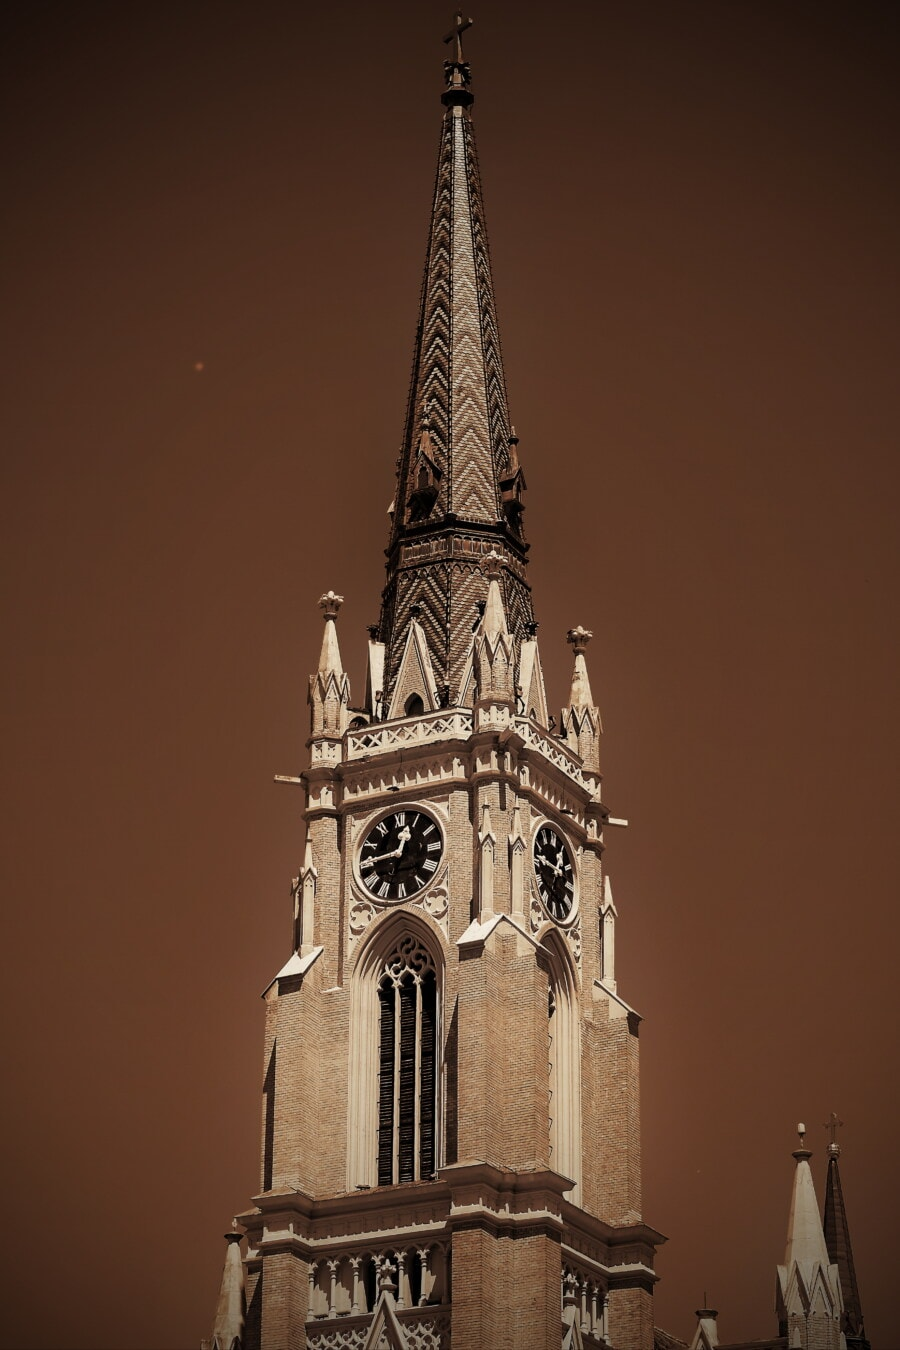 sepia, gothic, church tower, analog clock, cathedral, historic, culture, heritage, landmark, church